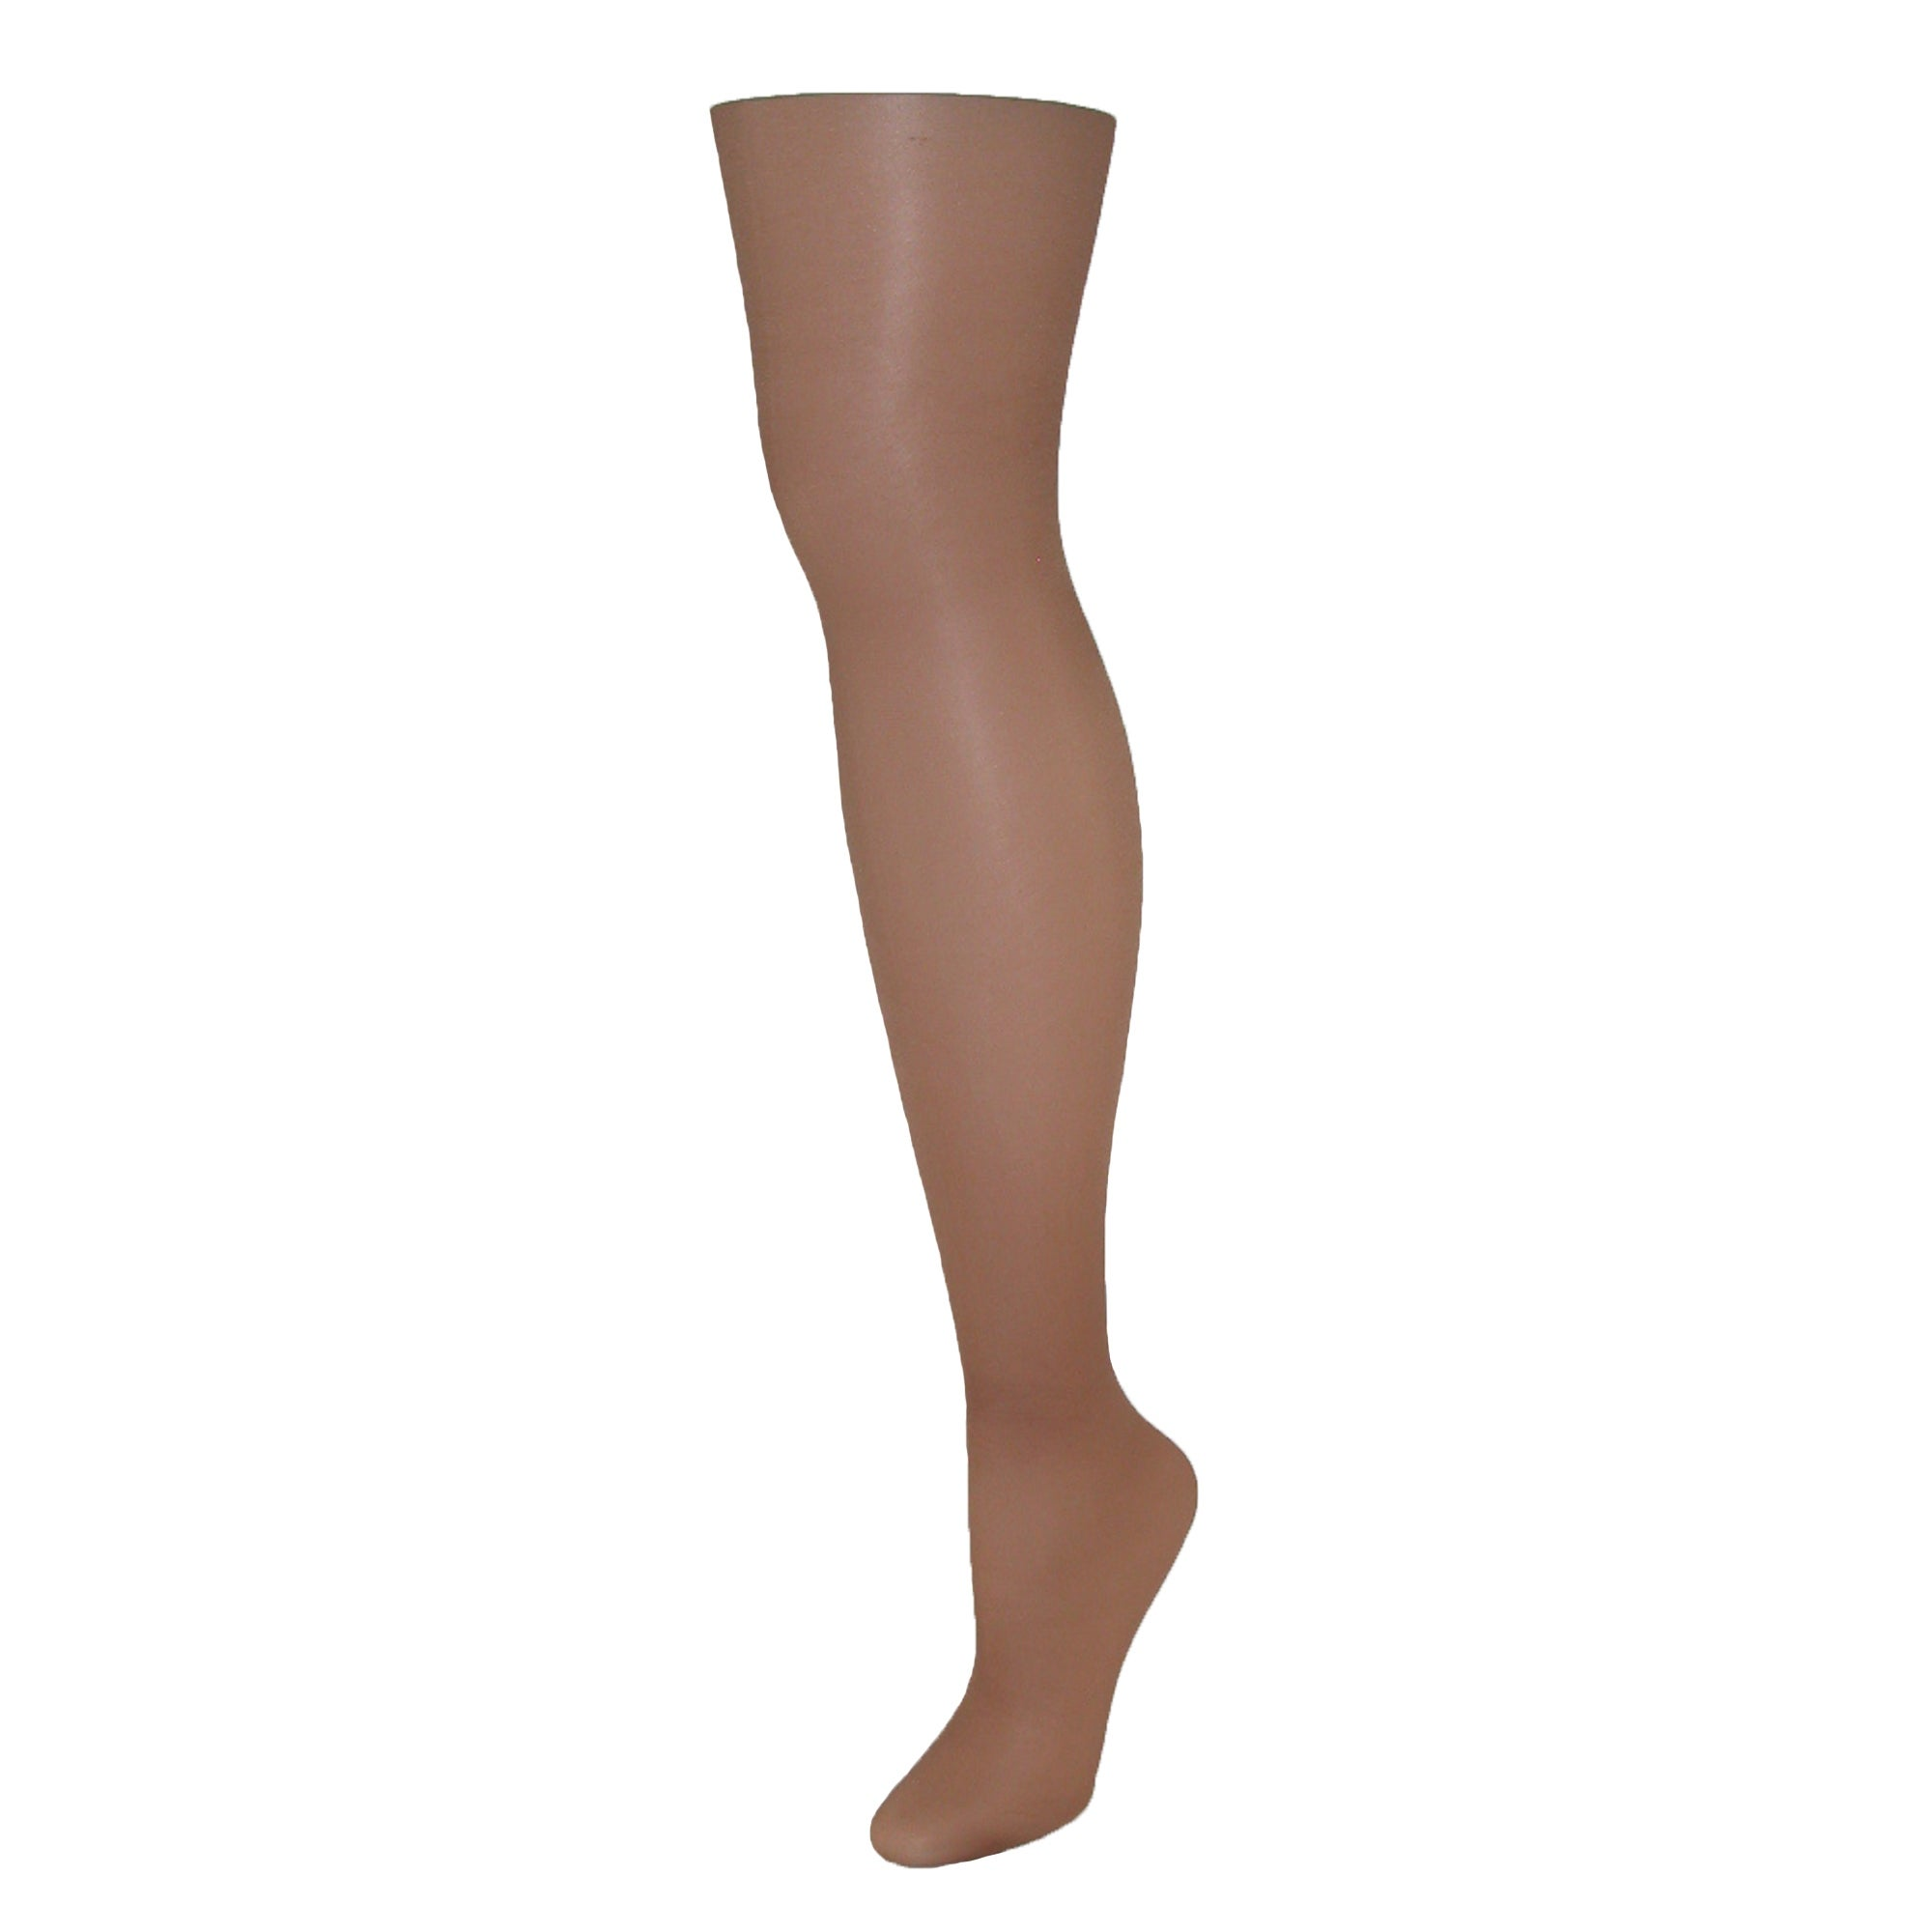 0ca0b94da2c Hanes Women s Silk Reflections Control Top Pantyhose with Sheer Toe (Pack  of 3)